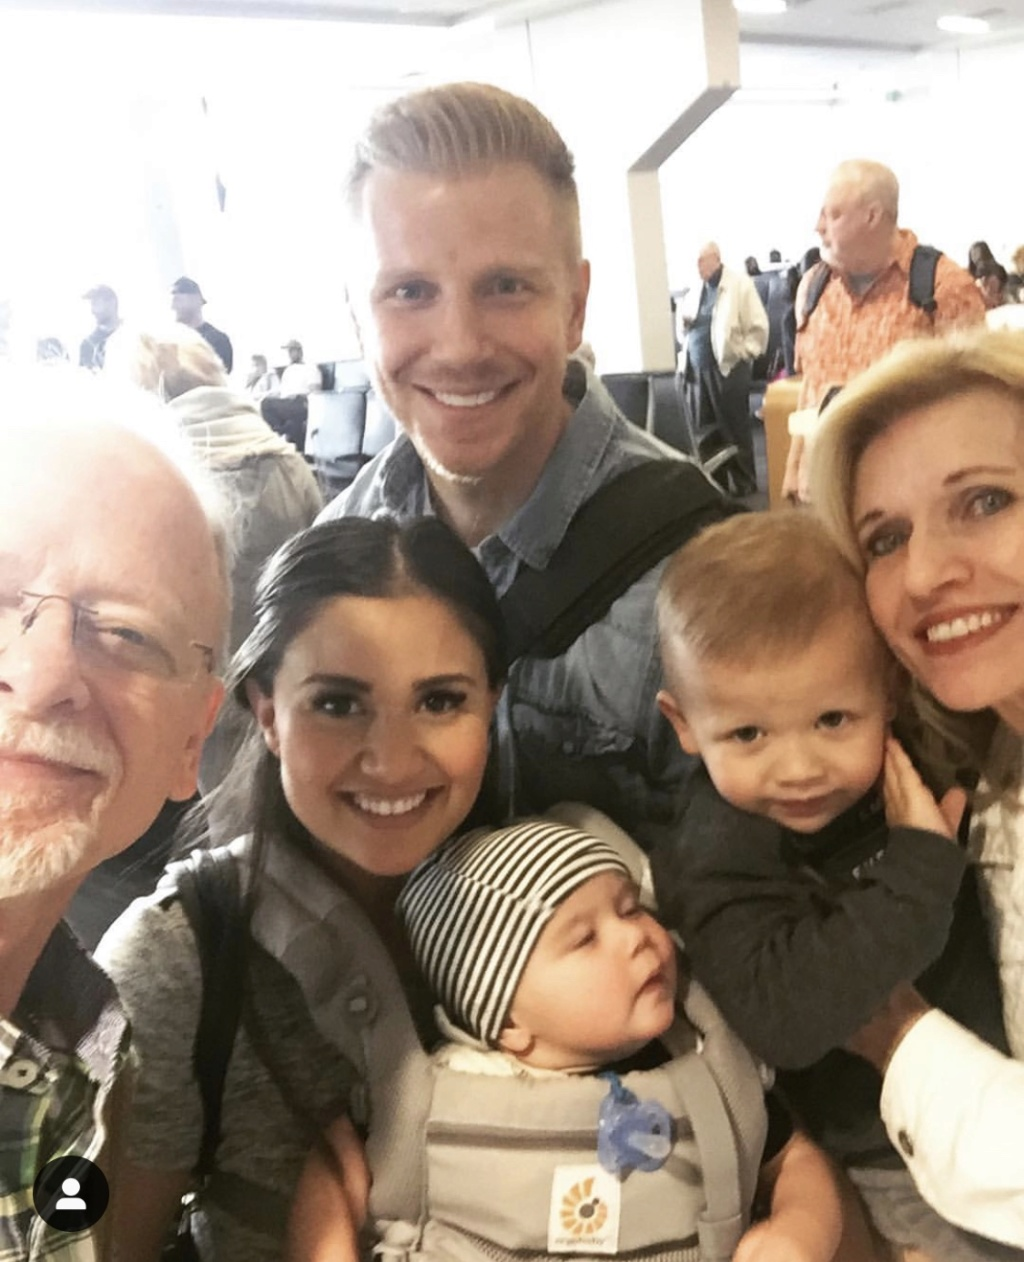 RaiseAndShine - Sean & Catherine Lowe - Fan Forum - Twitter - Facebook - Discussion Thread #71 D953c010